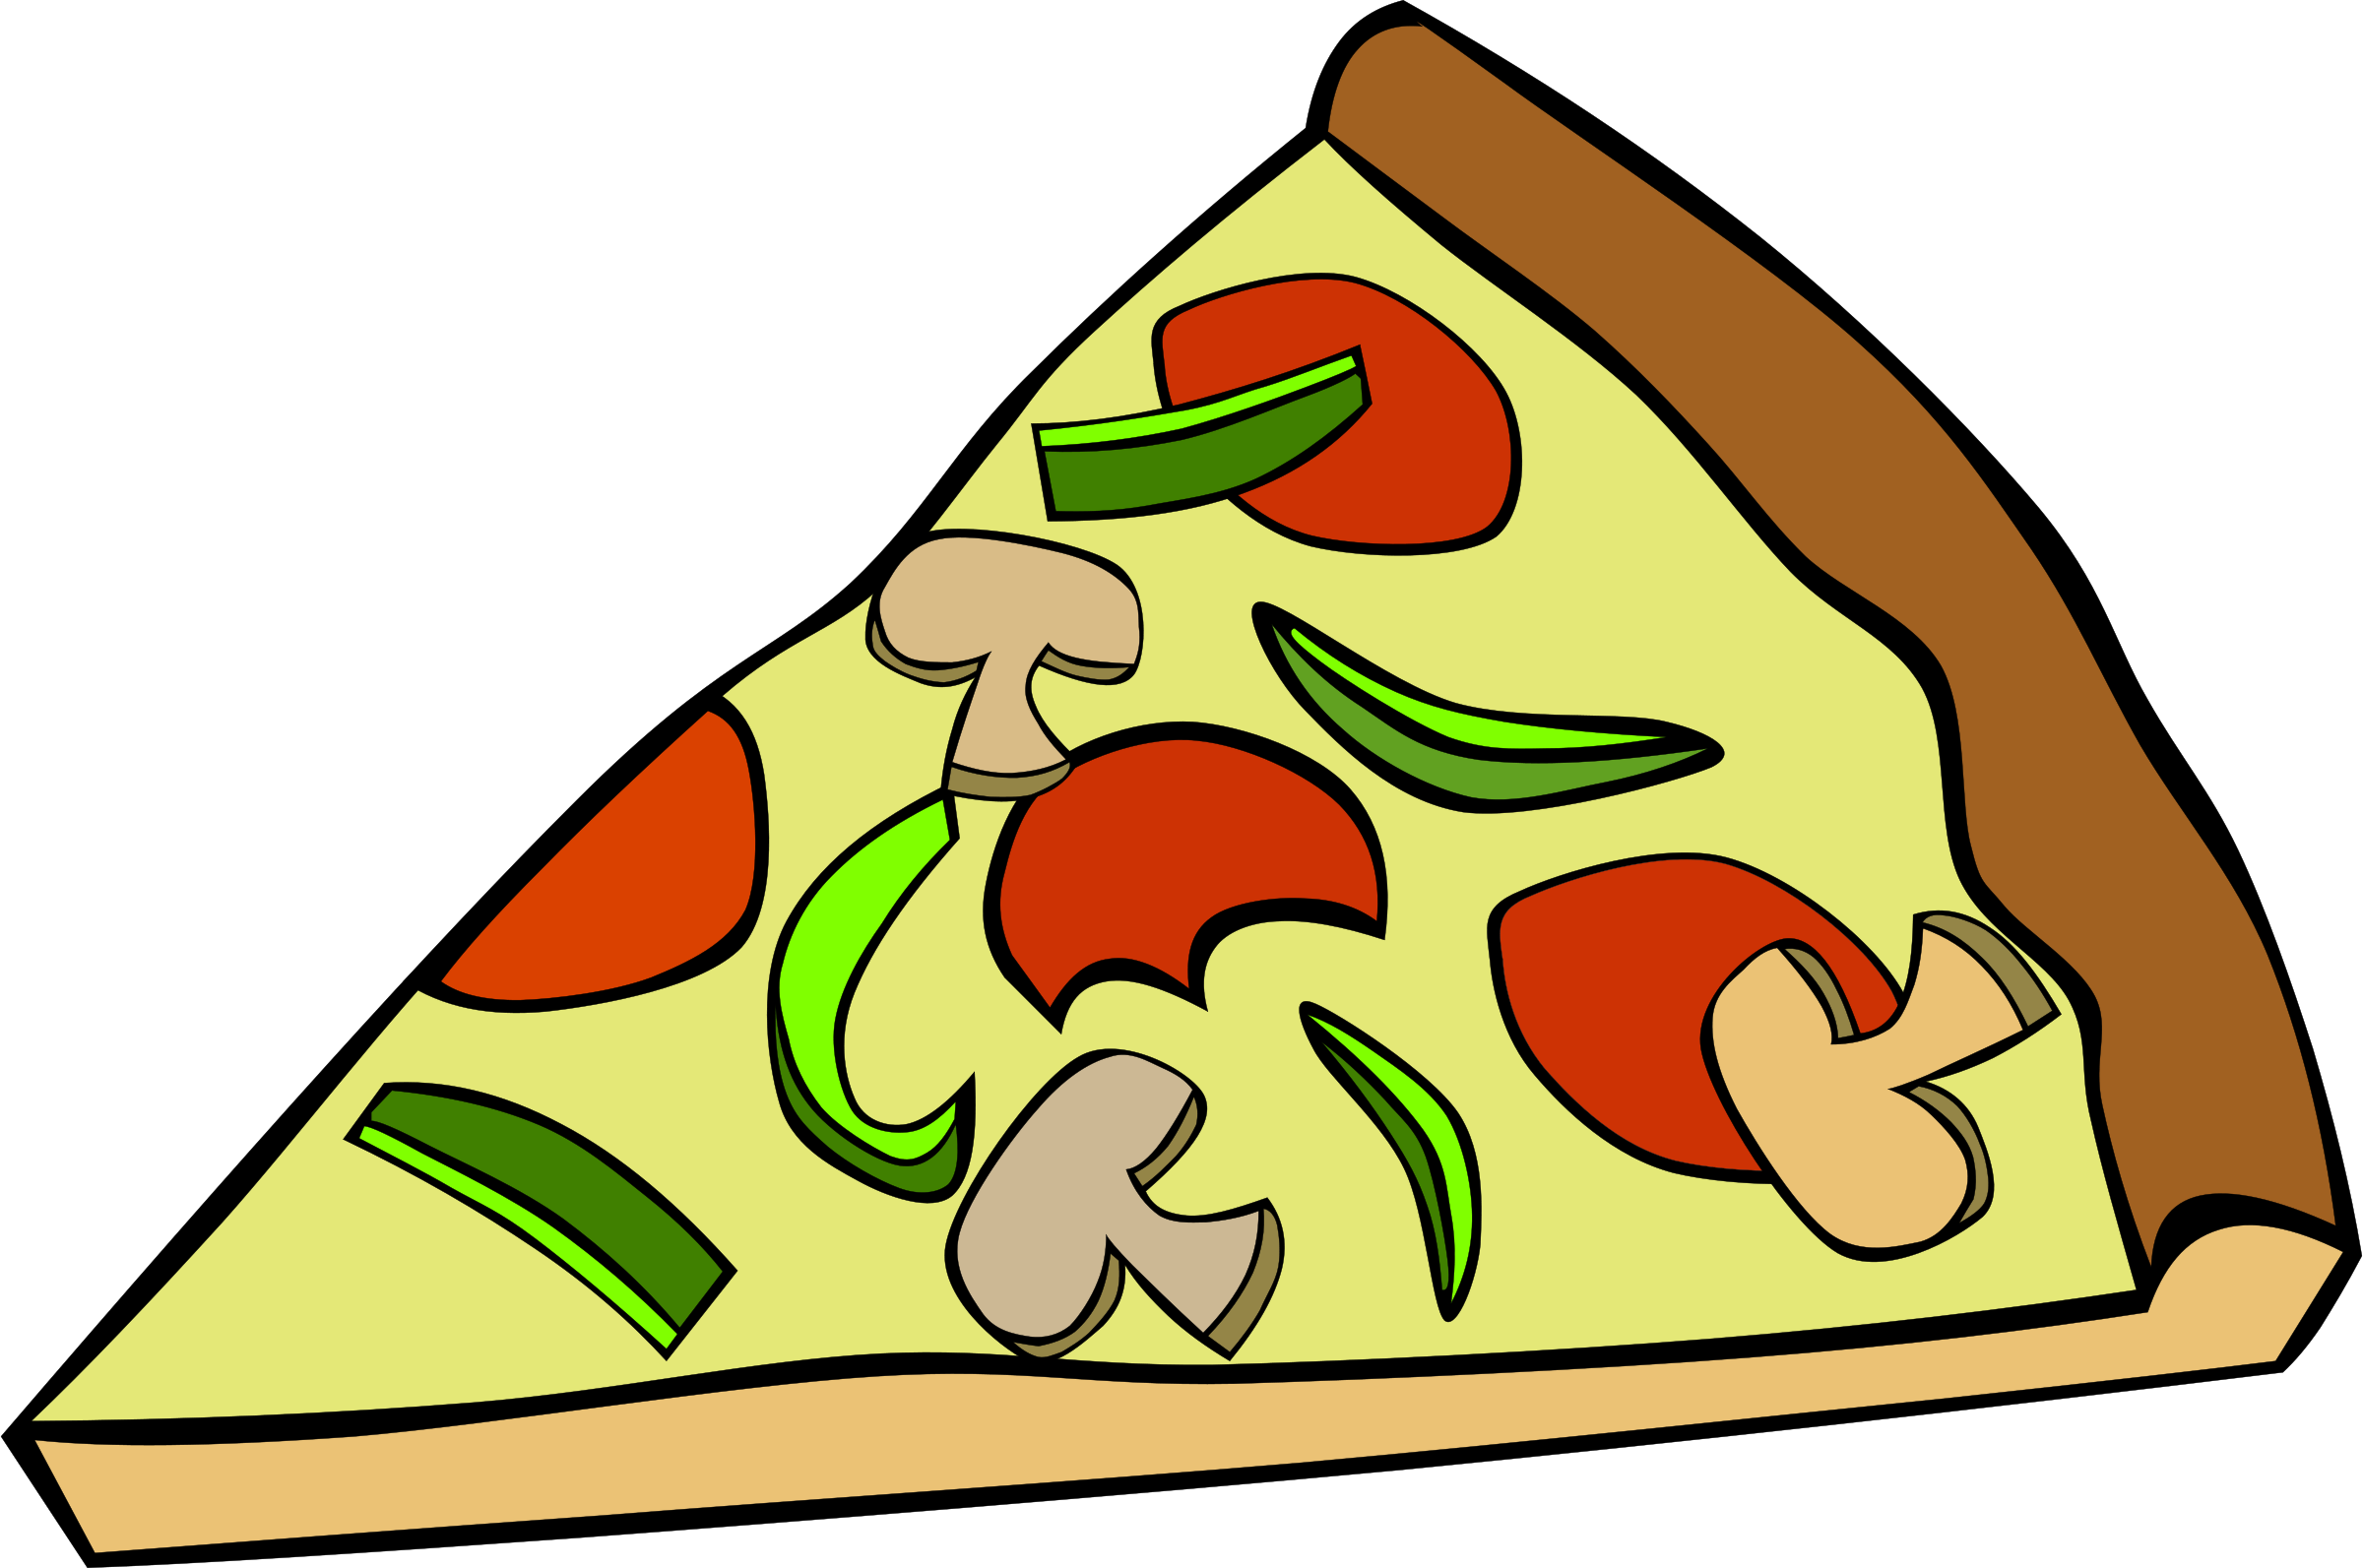 Pizza clipart background